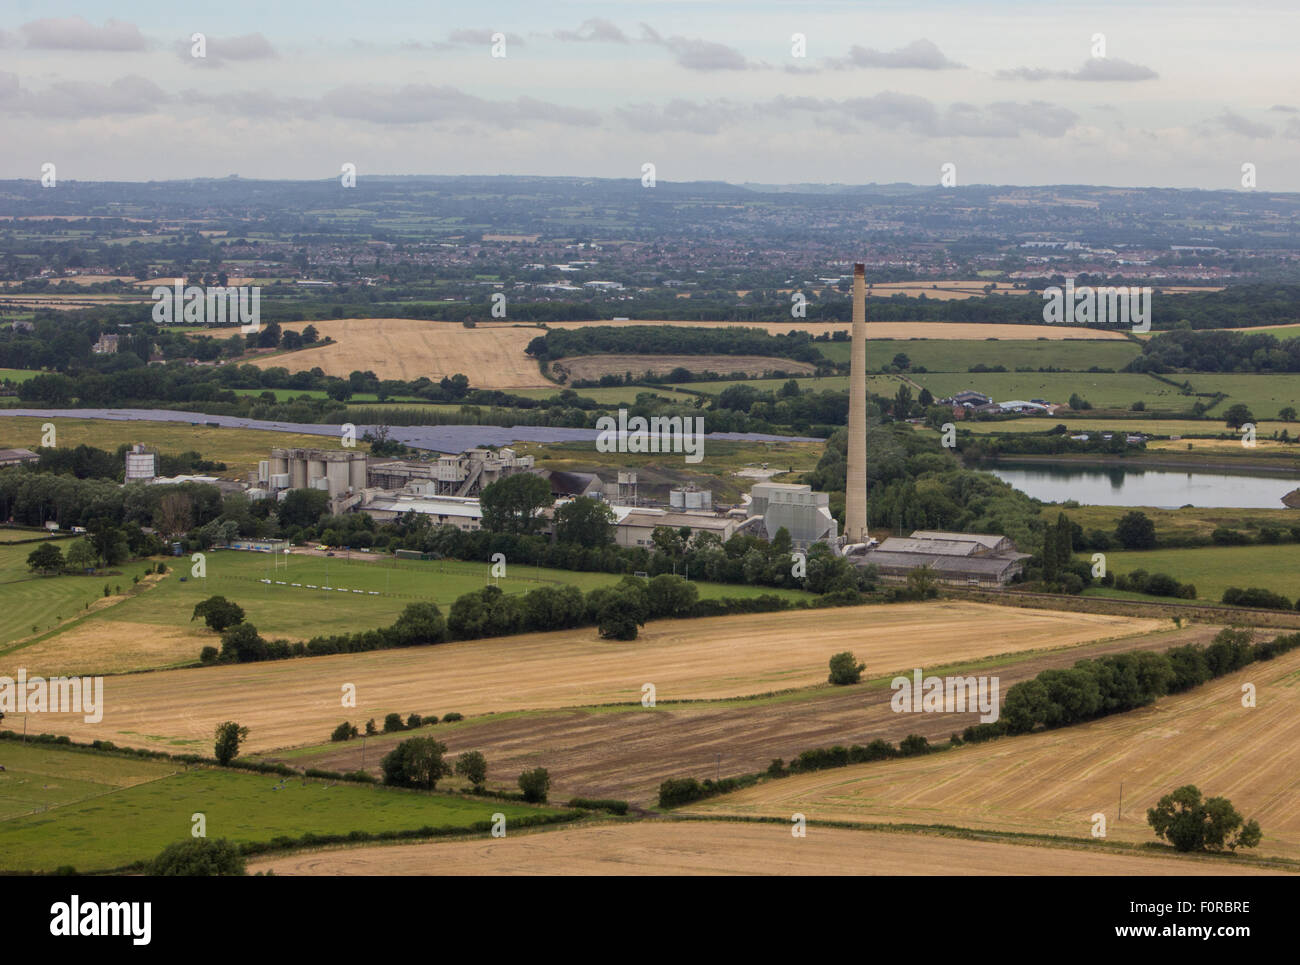 Looking across the Wiltshire town of Westbury from up the top of the hill near the White Horse. Stock Photo